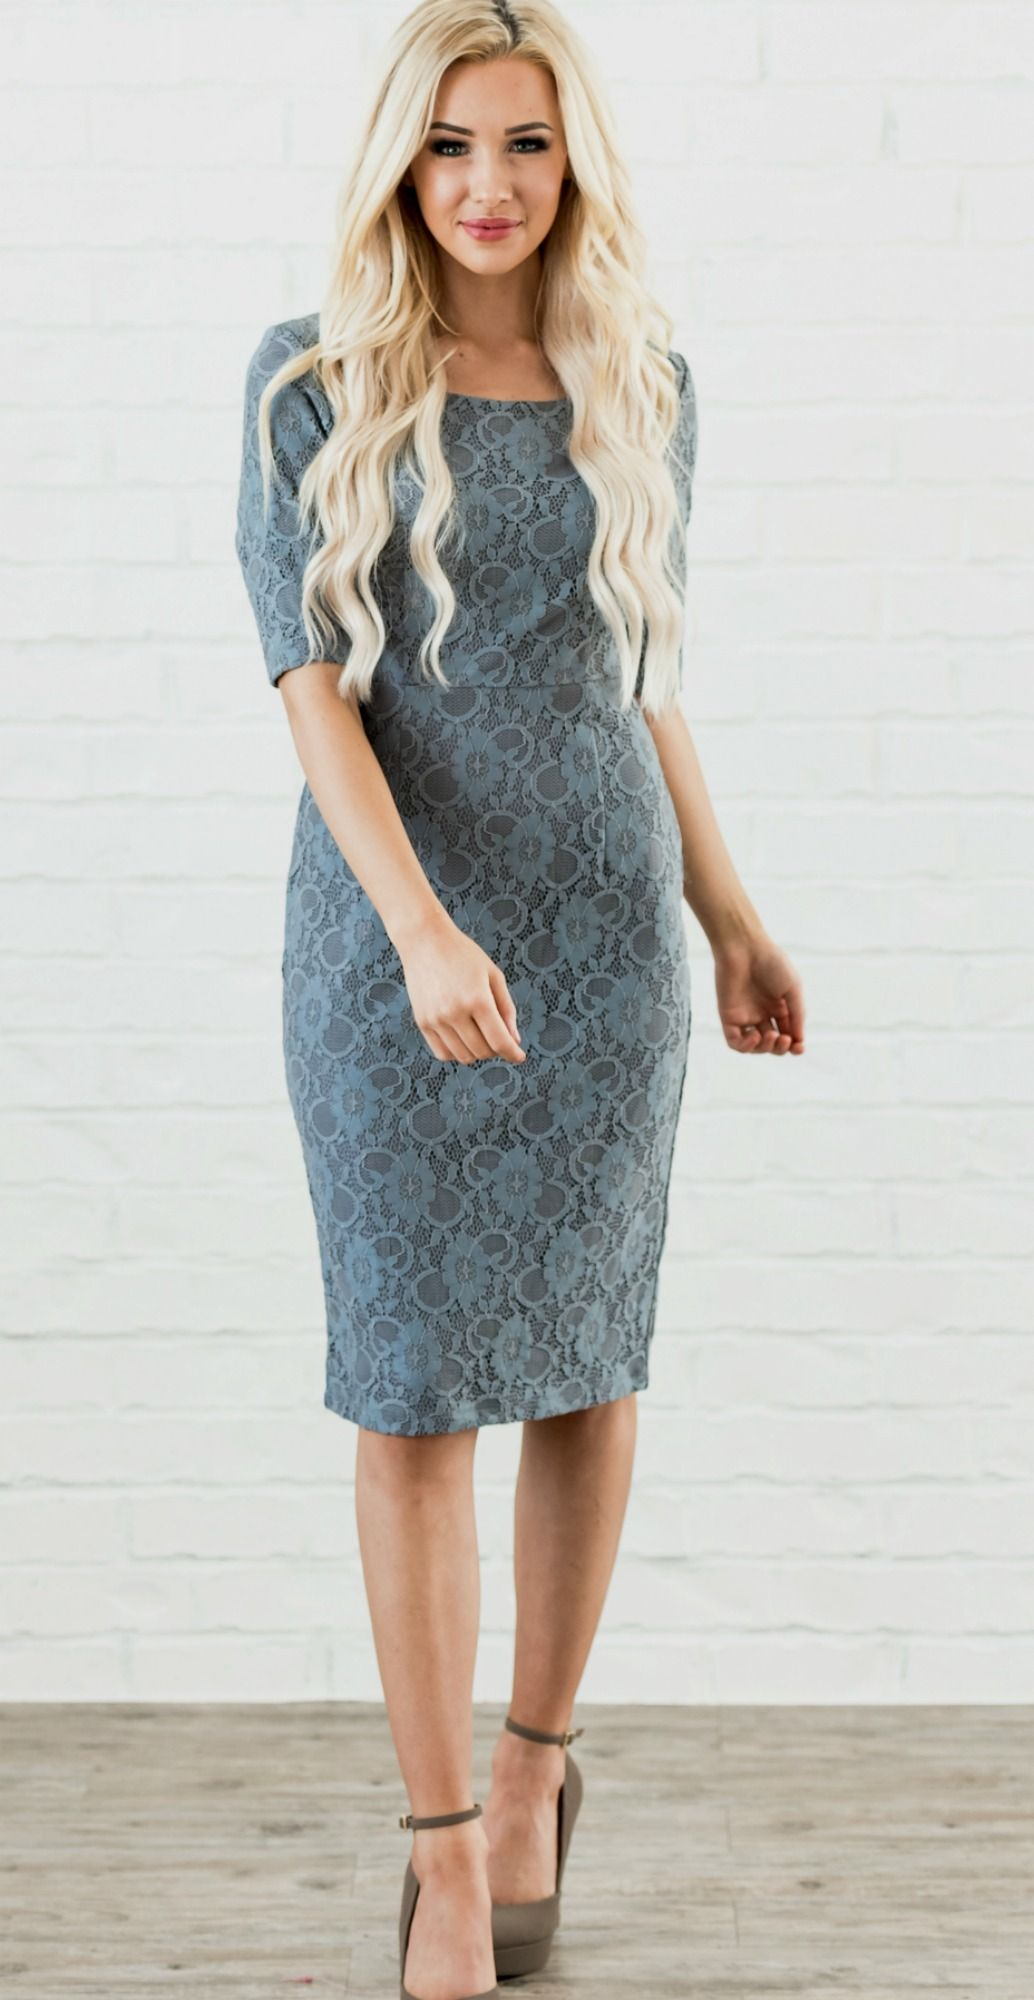 Dusty blue pencil dress